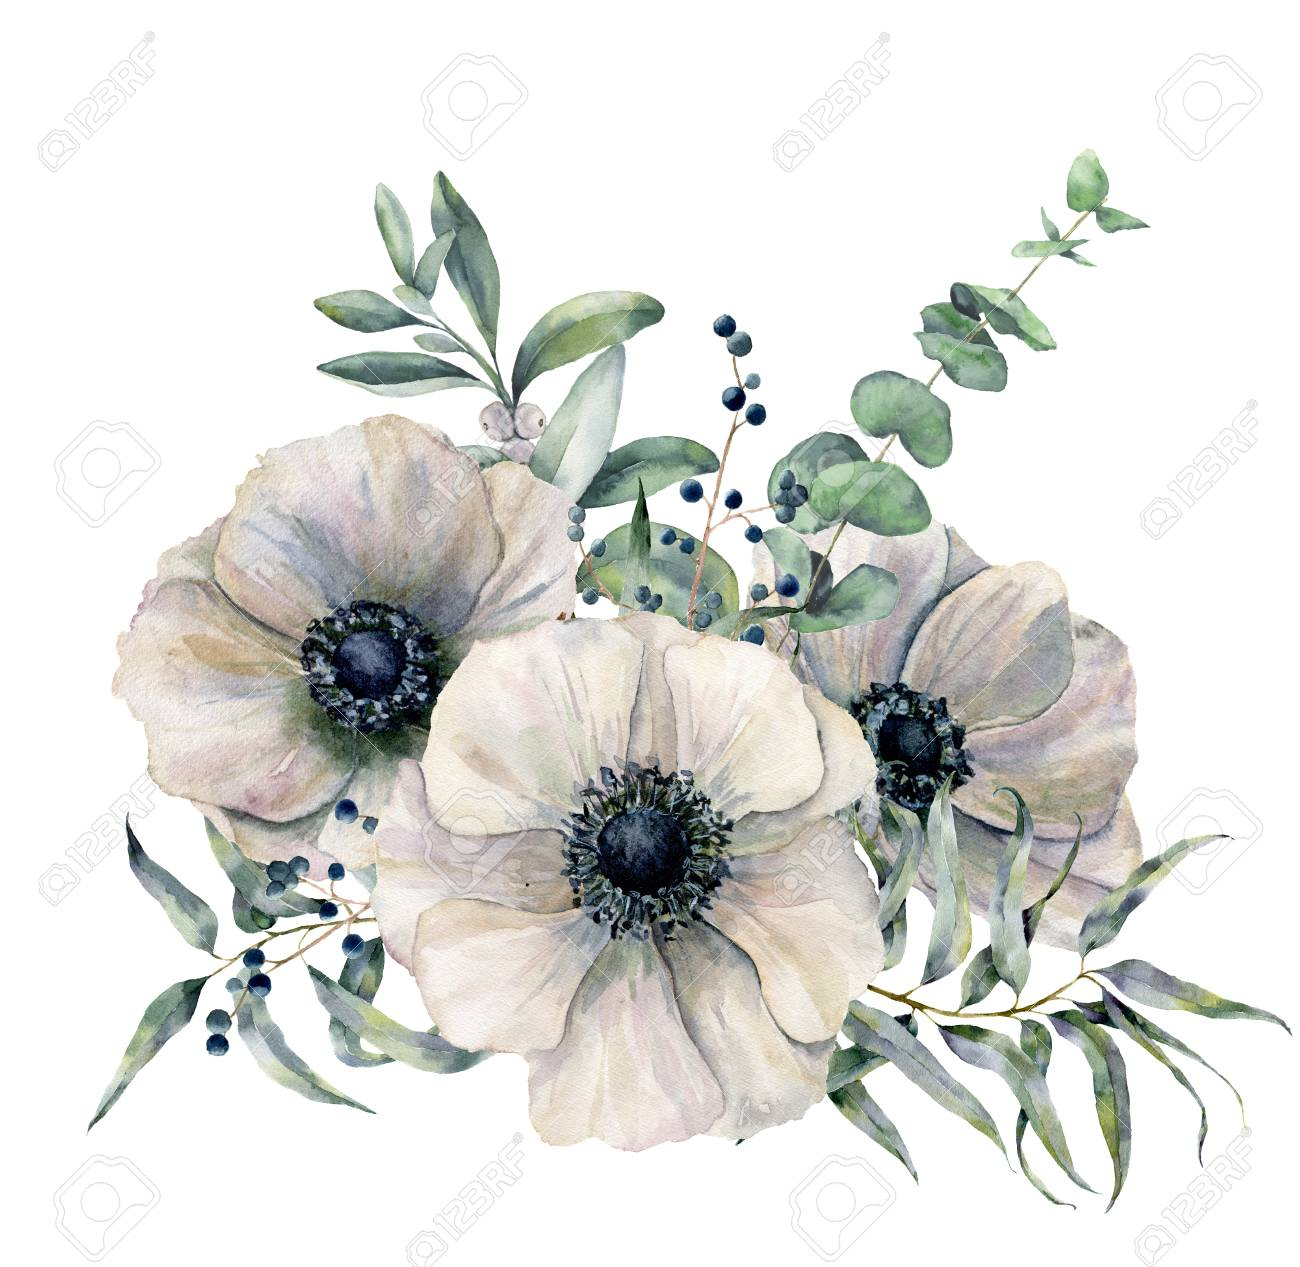 Watercolor white anemone bouquet. Hand painted flower, eucalyptus leaves and juniper isolated on white background. Illustration for design, fabric, print or background. - 99944526